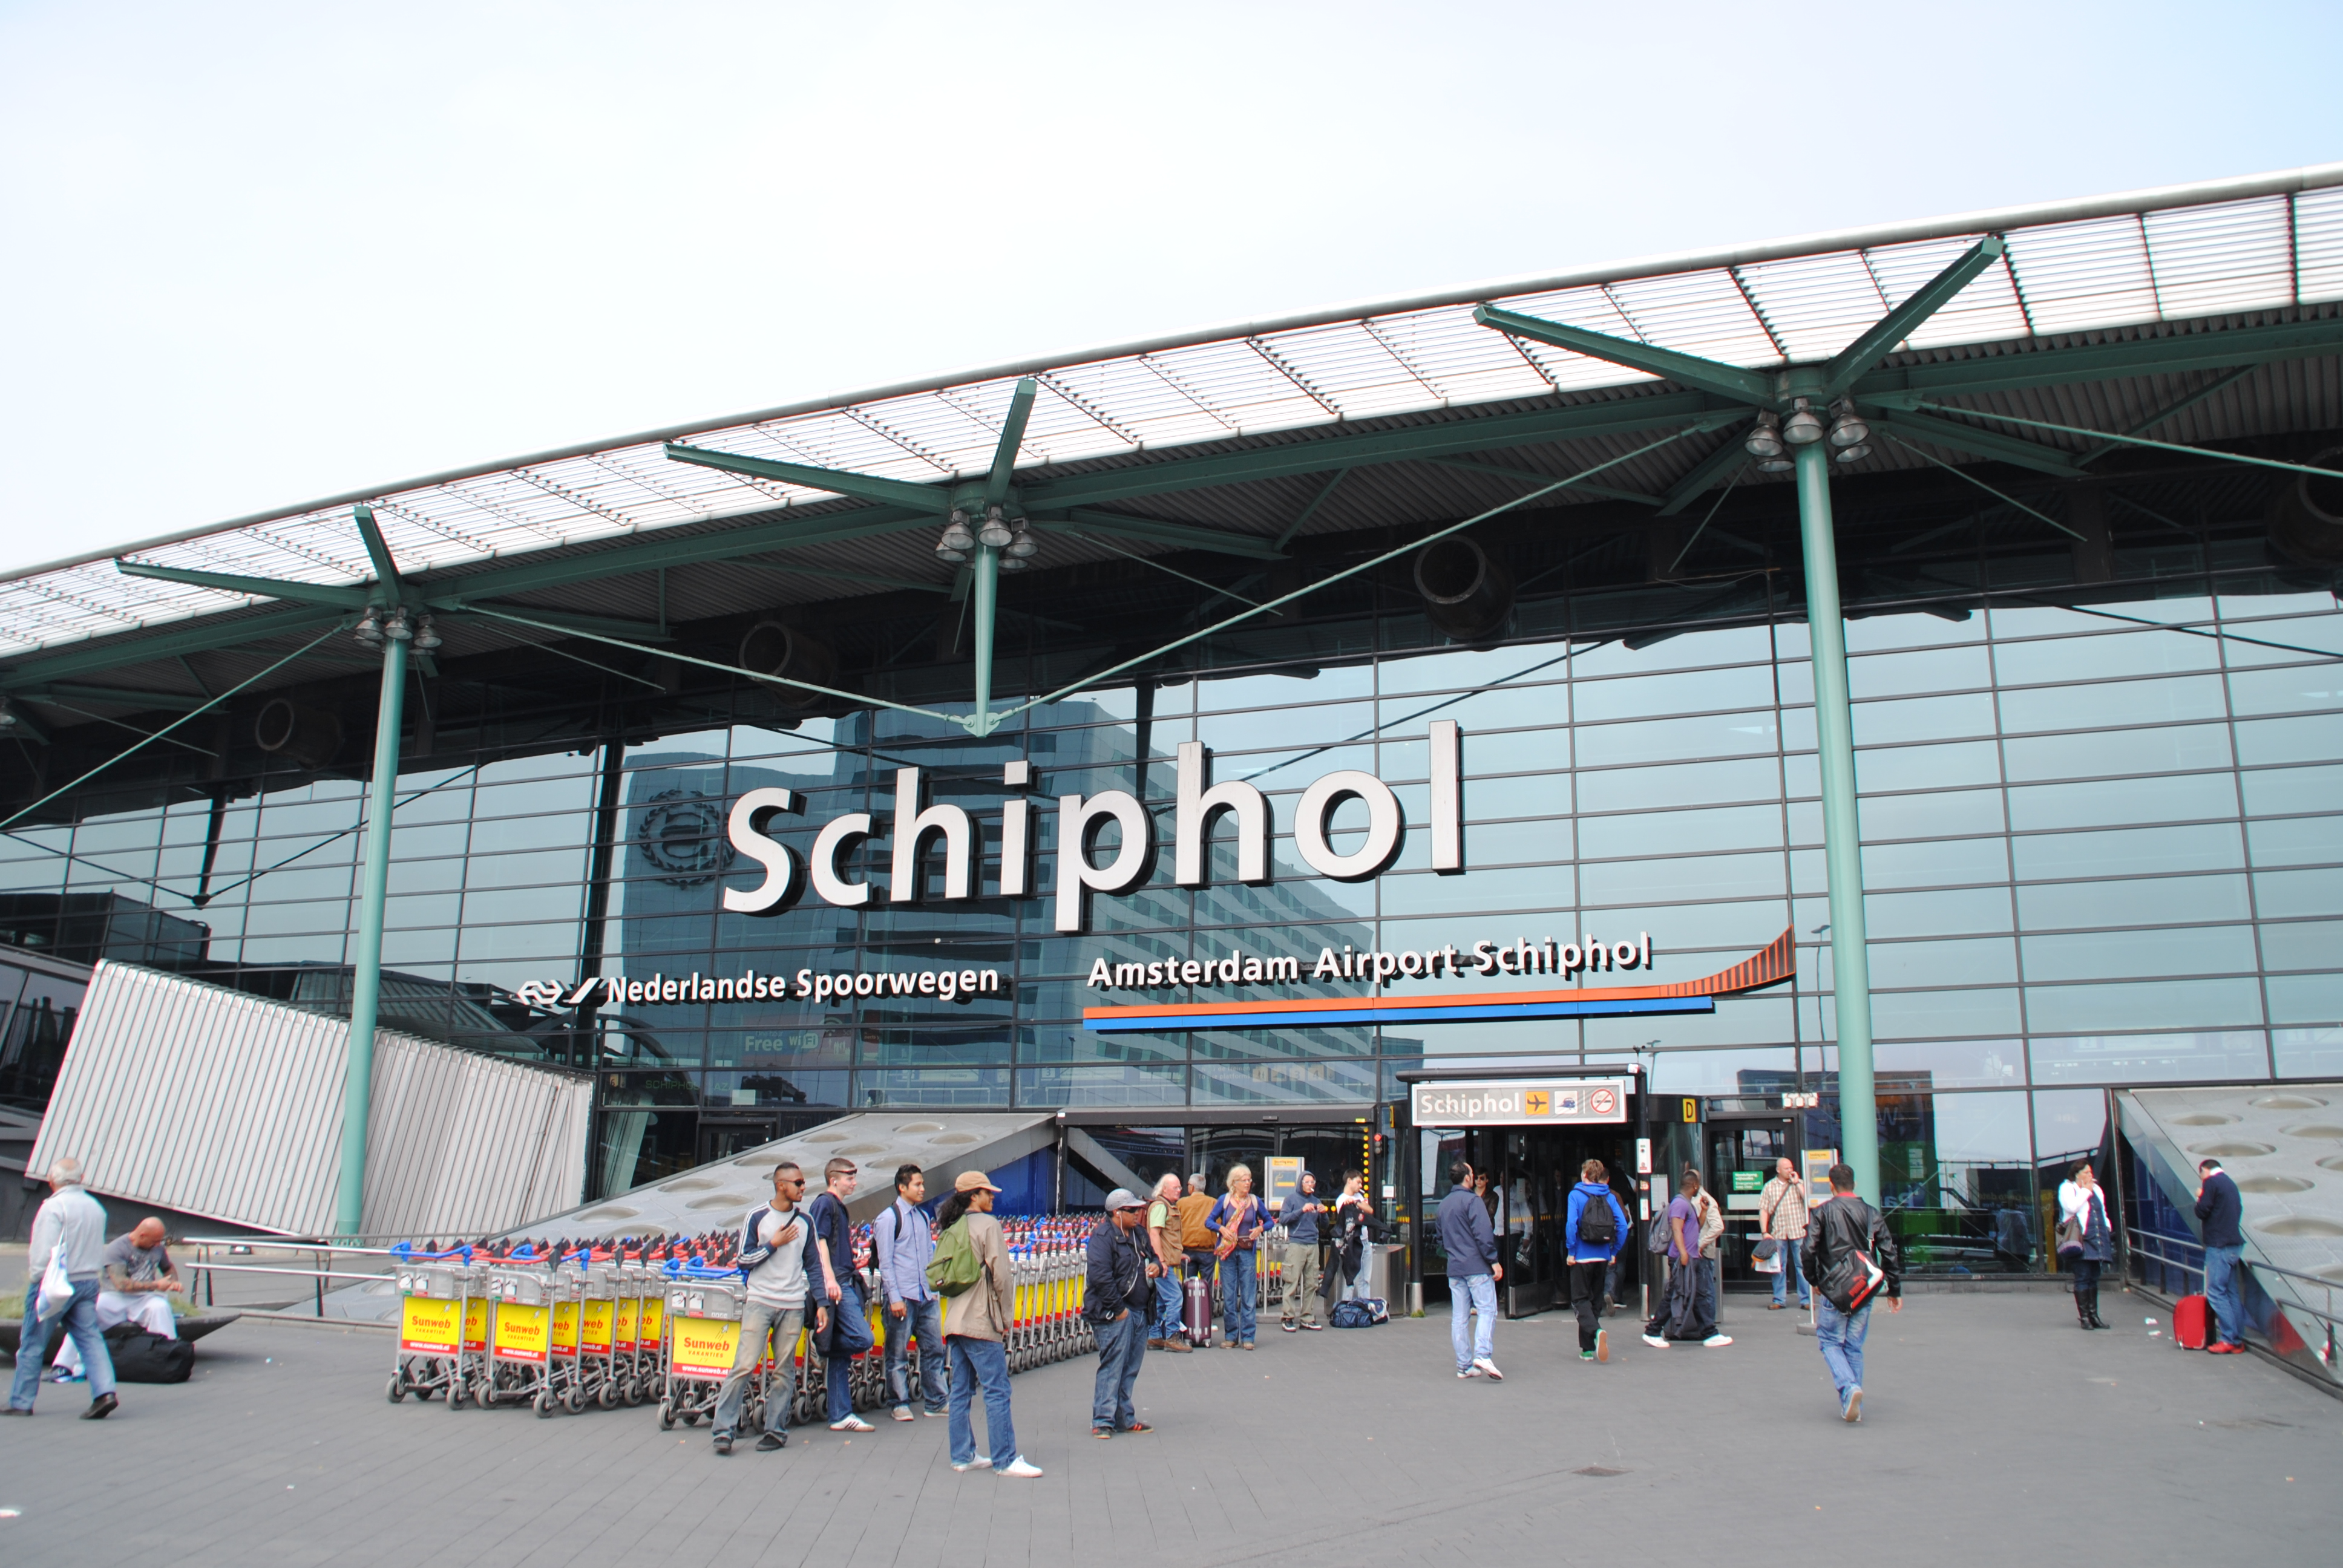 http://upload.wikimedia.org/wikipedia/commons/c/c9/Amsterdam_Schiphol_Airport_entrance.jpg